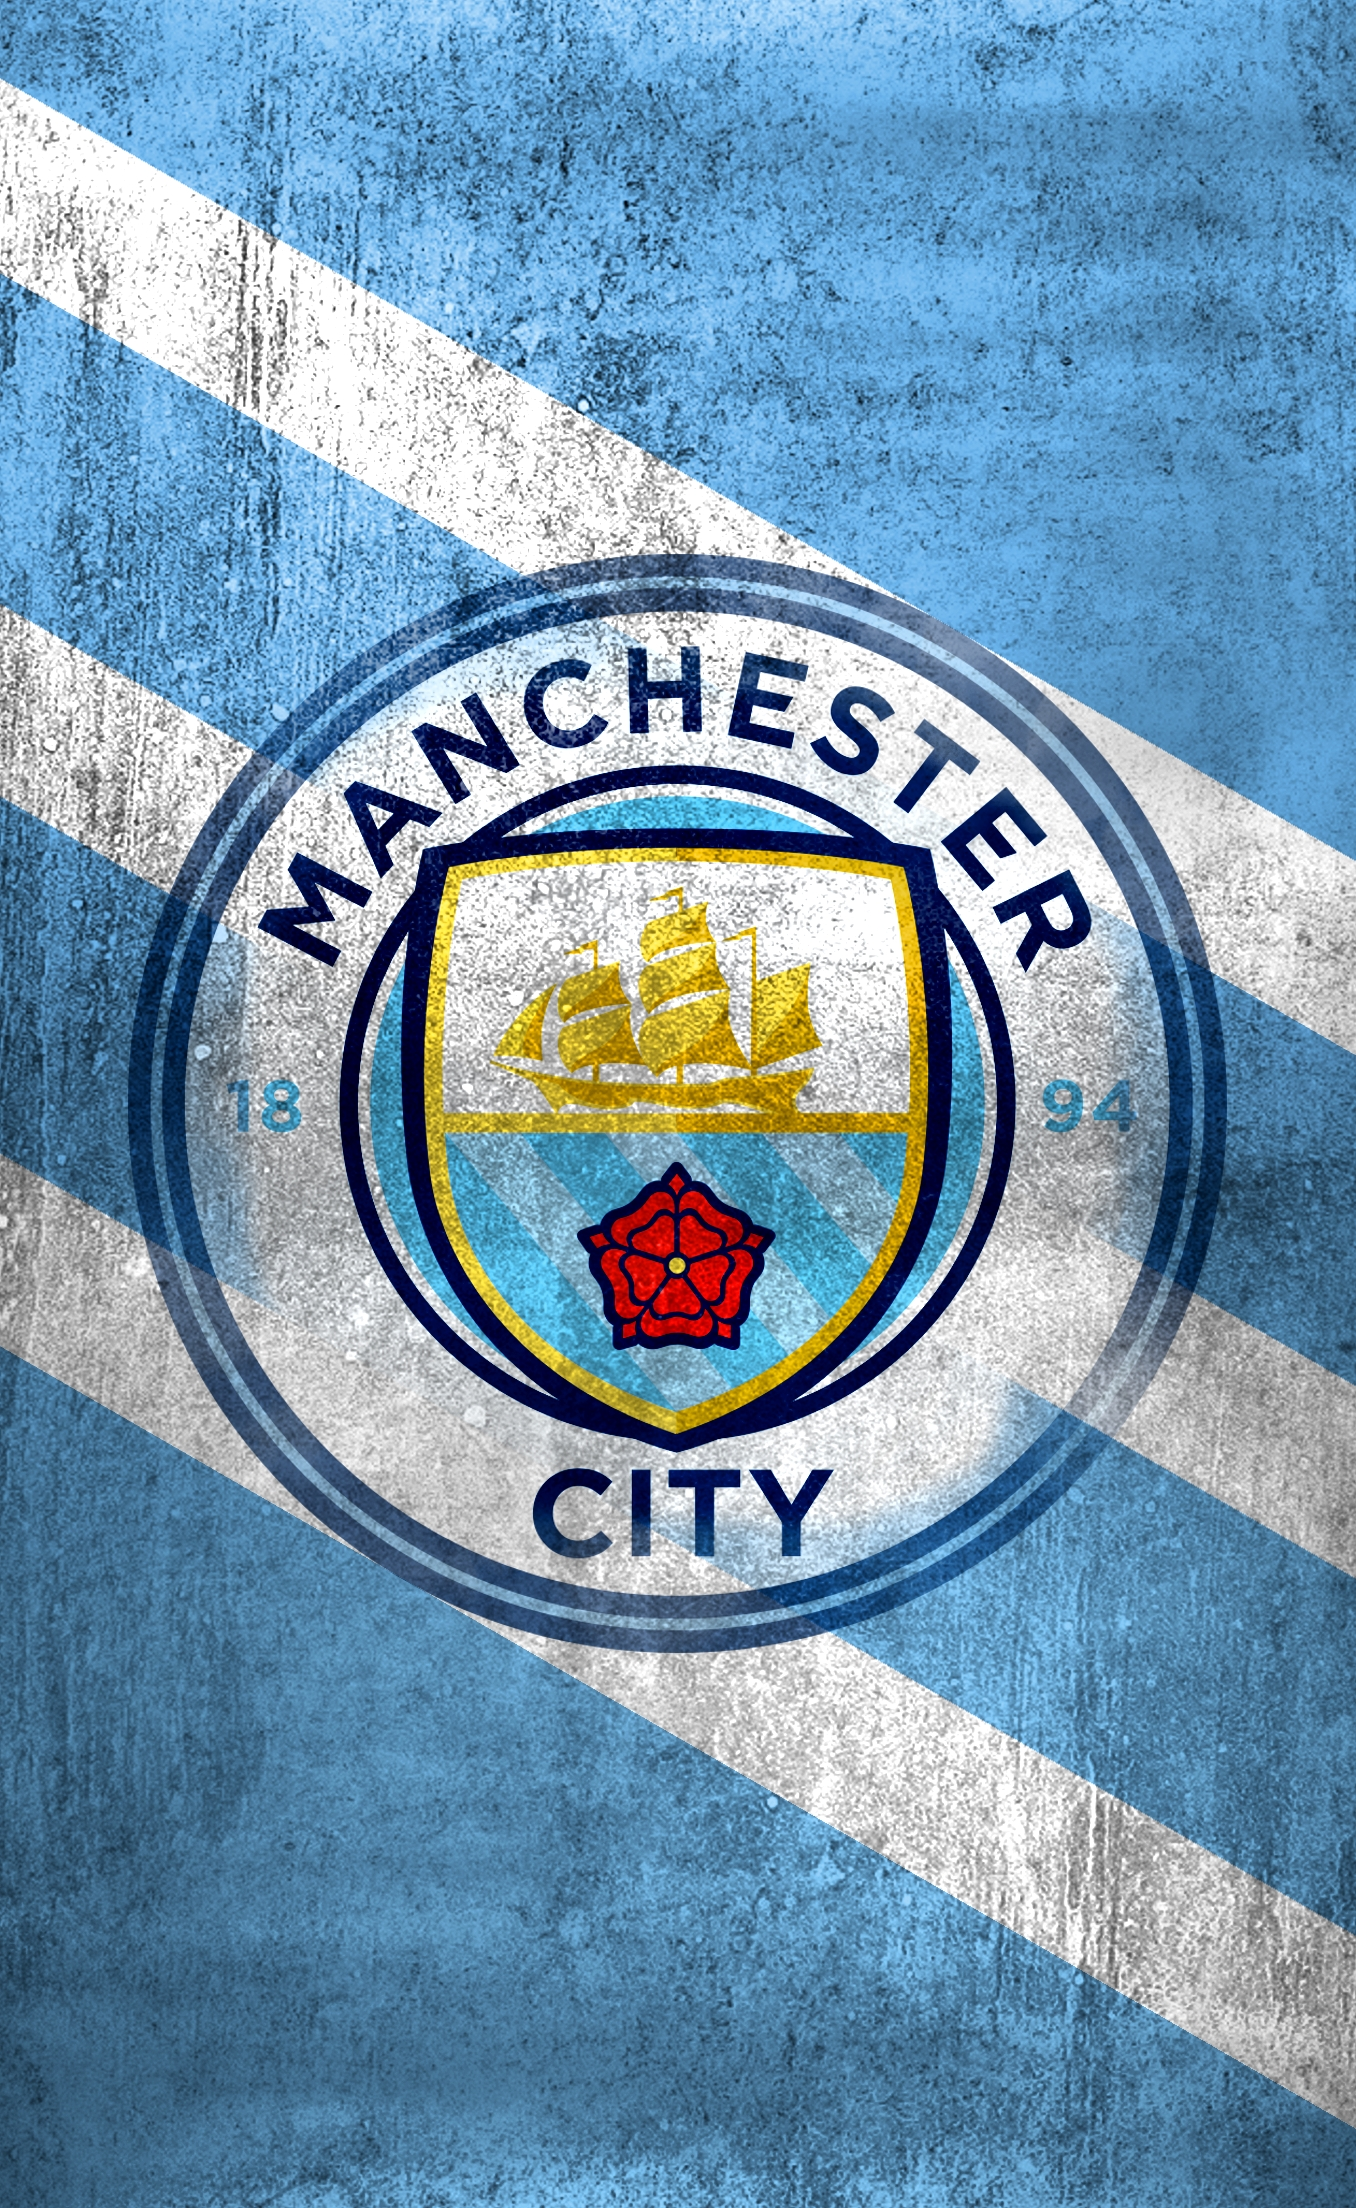 10 Best Manchester City Iphone Wallpaper FULL HD 1080p For PC